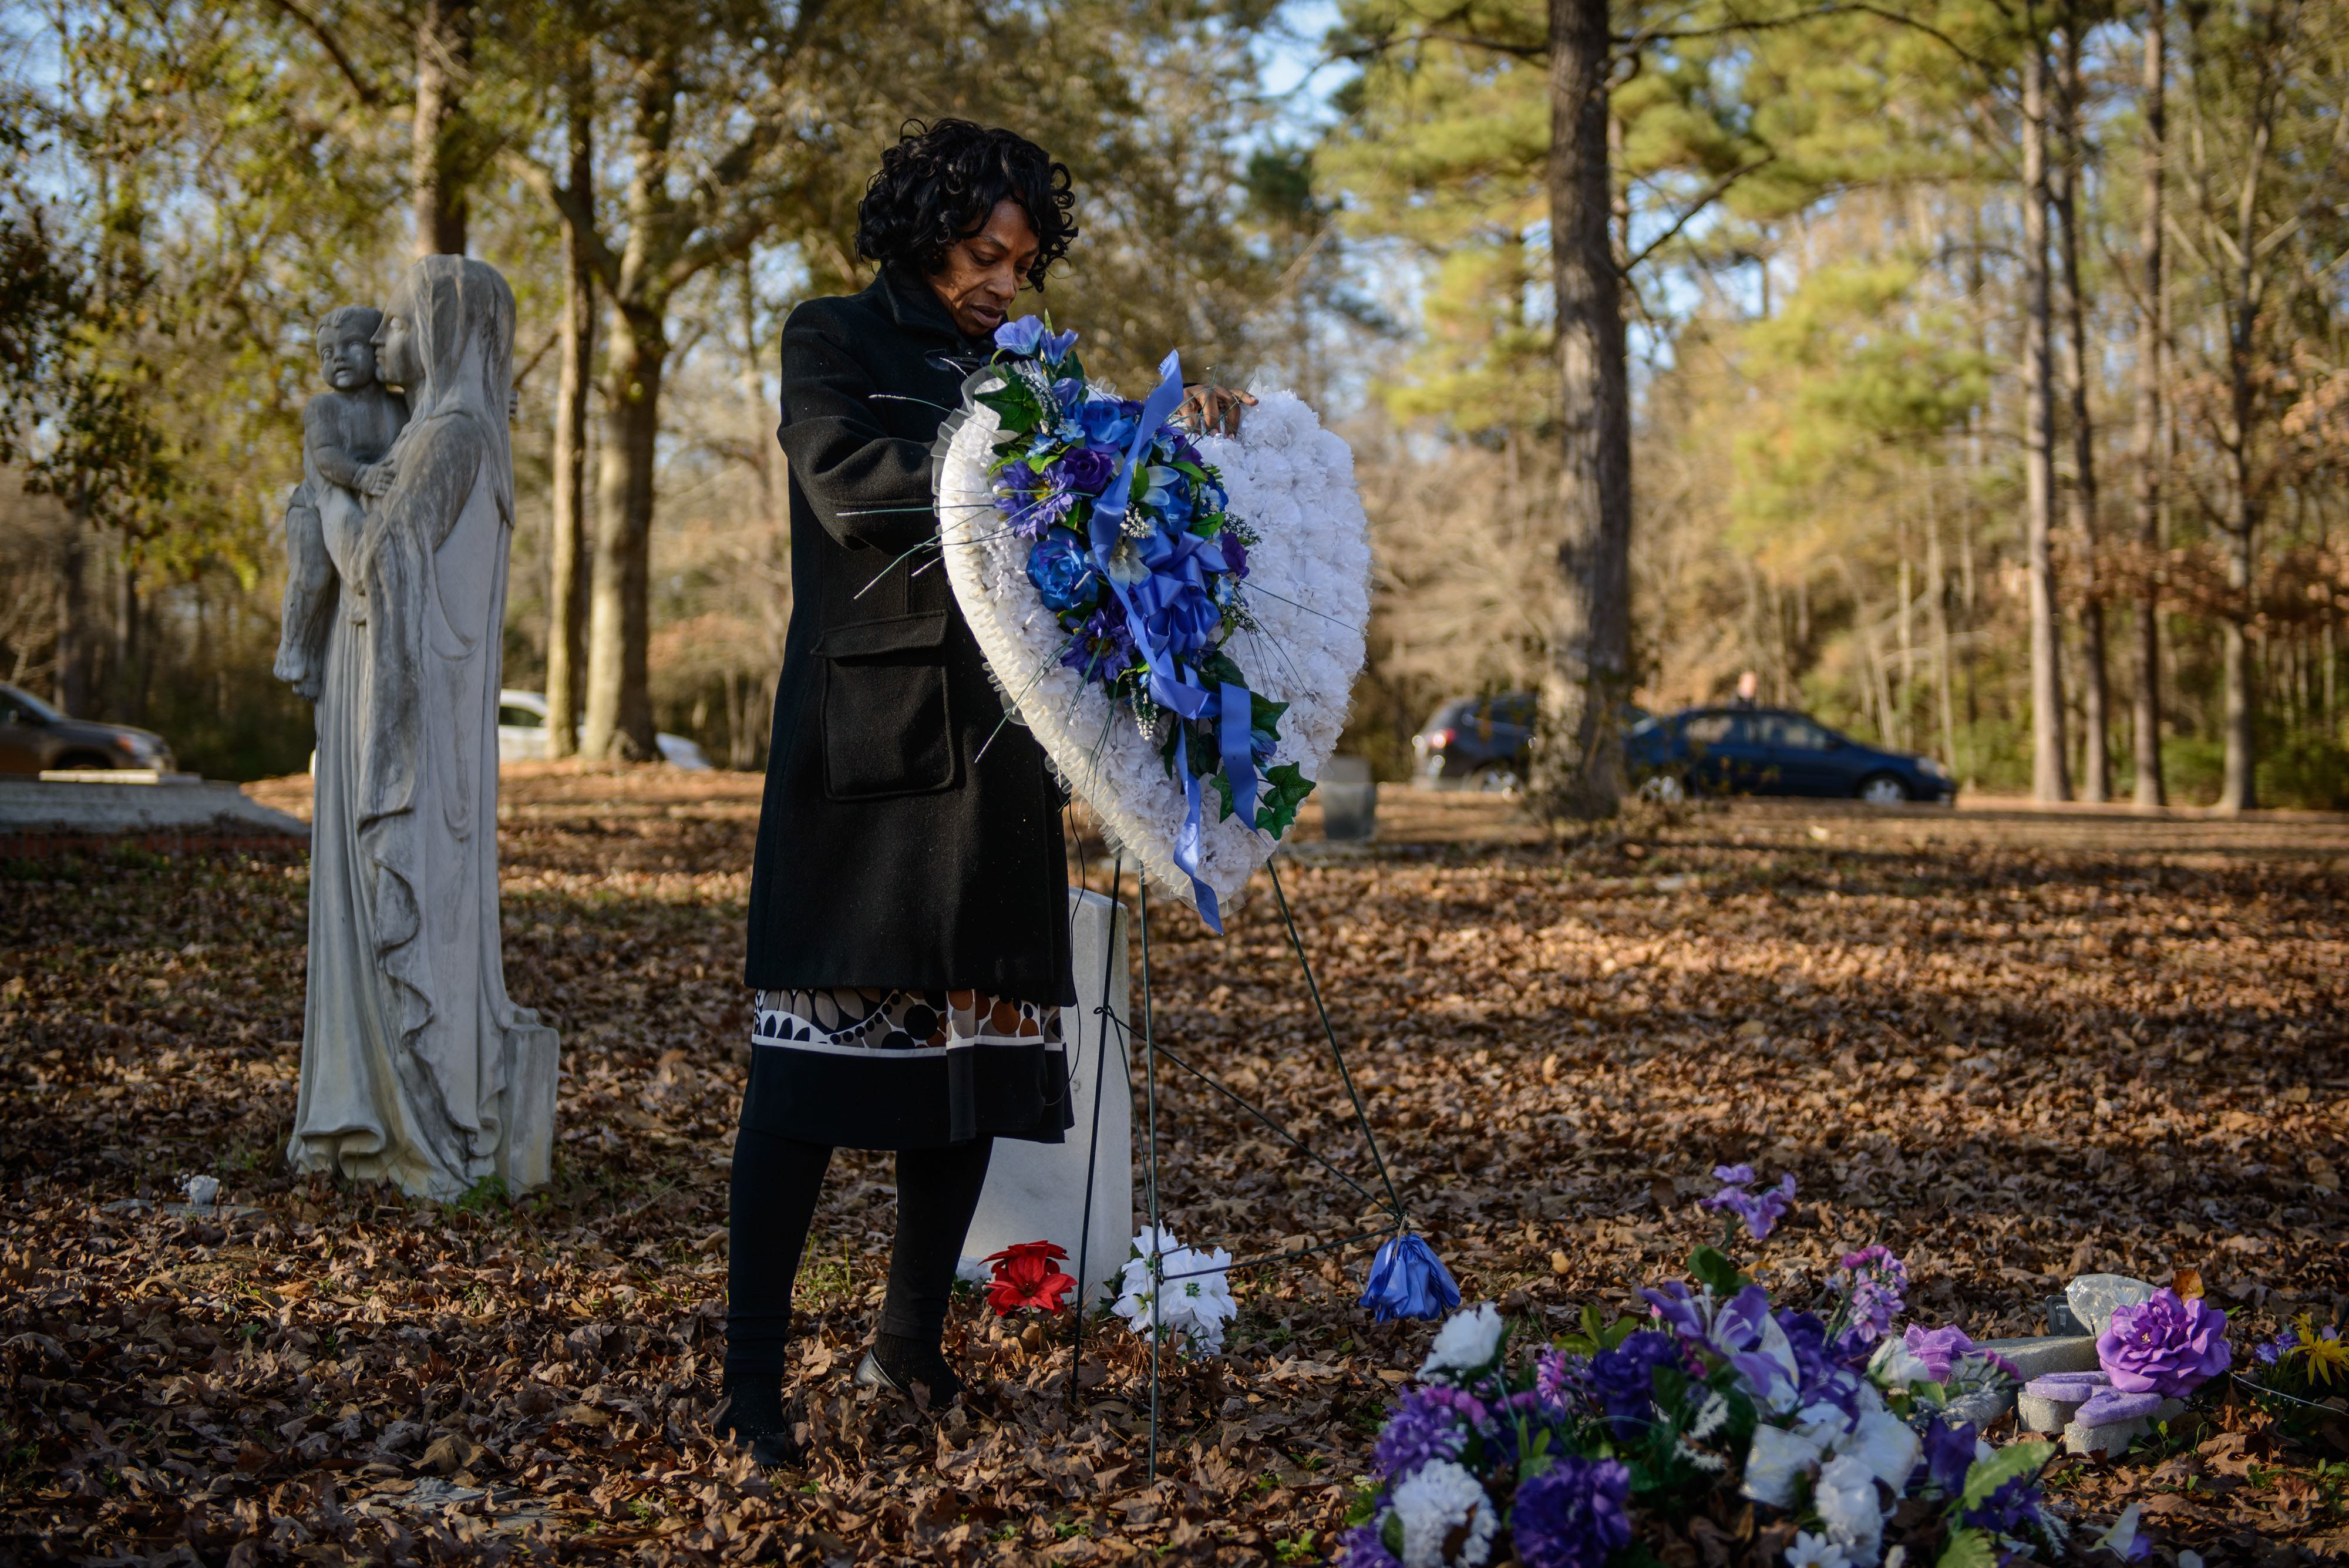 Claudia Lacy cleans up the flowers at the grave of her son, Lennon Lacy, Sunday, Dec. 14, 2014, at Old Shaw-Lacy Field Cemetery in Bladenboro, N.C. Lennon Lacy, a 17-year-old black teenager, was found dead on Aug. 29, 2014, hanging from a swing set in a trailer park in the rural community. Police ruled the death a suicide, but his family believe it was murder.